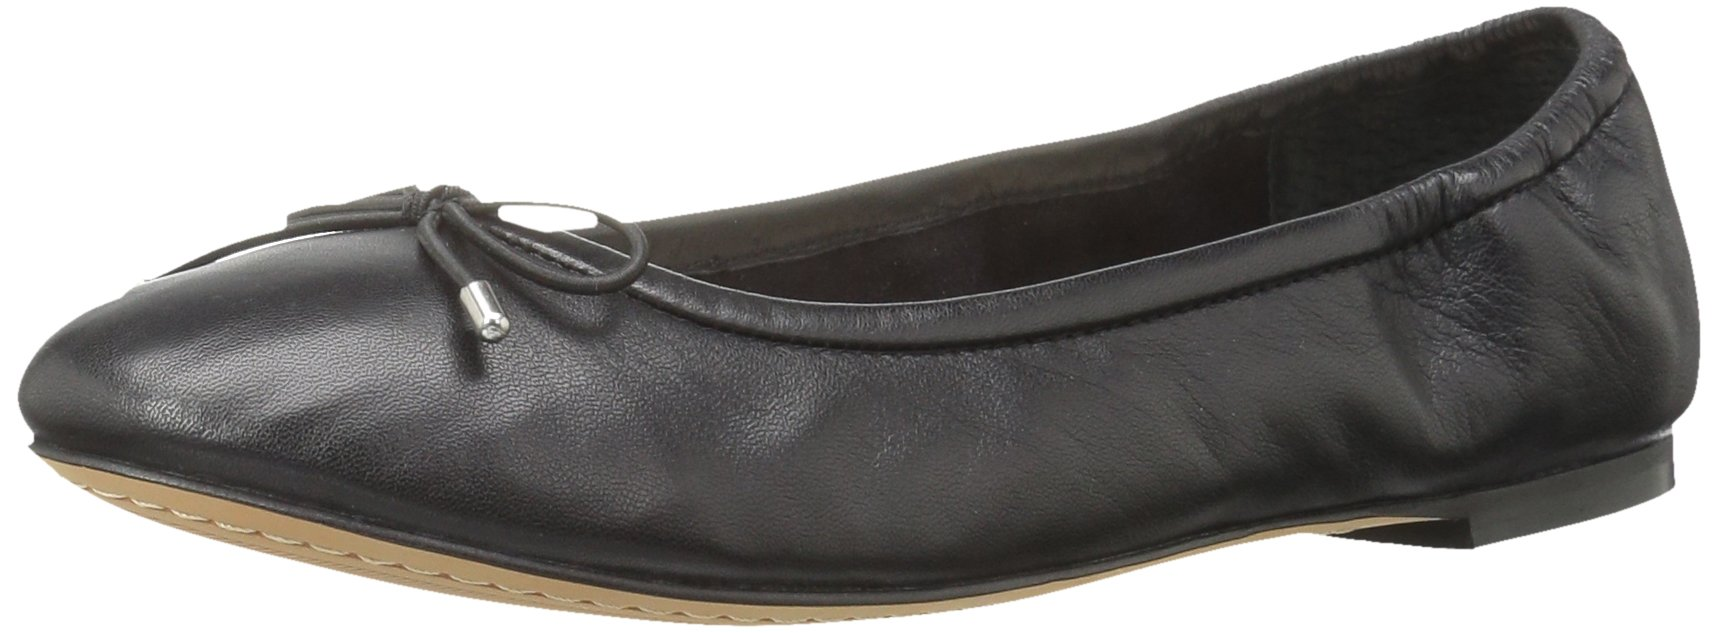 206 Collective Women's Madison Ballet Flat, Black, 7.5 B US